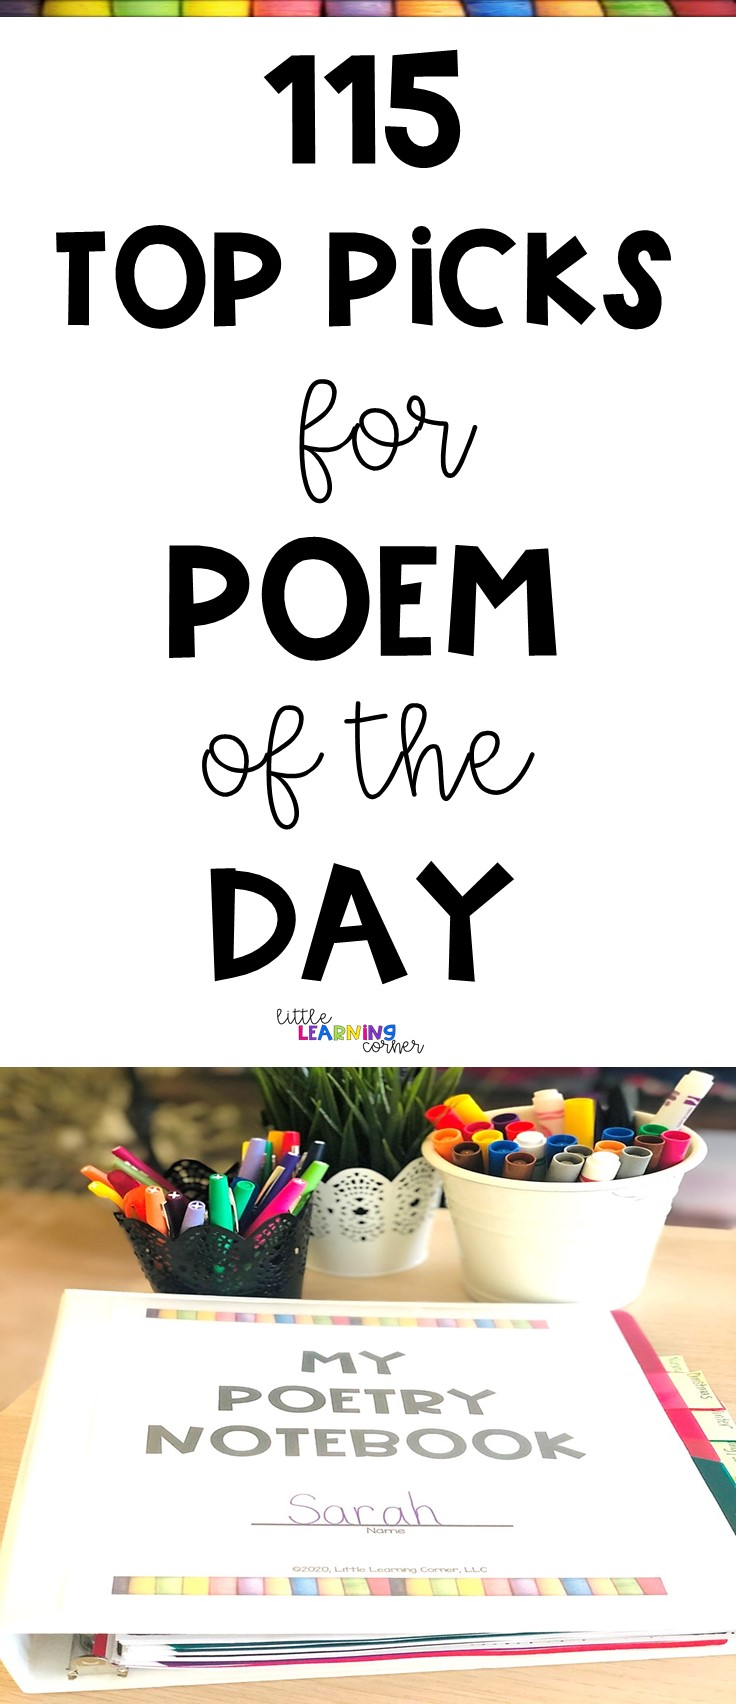 poem-of-the-day-pin-3